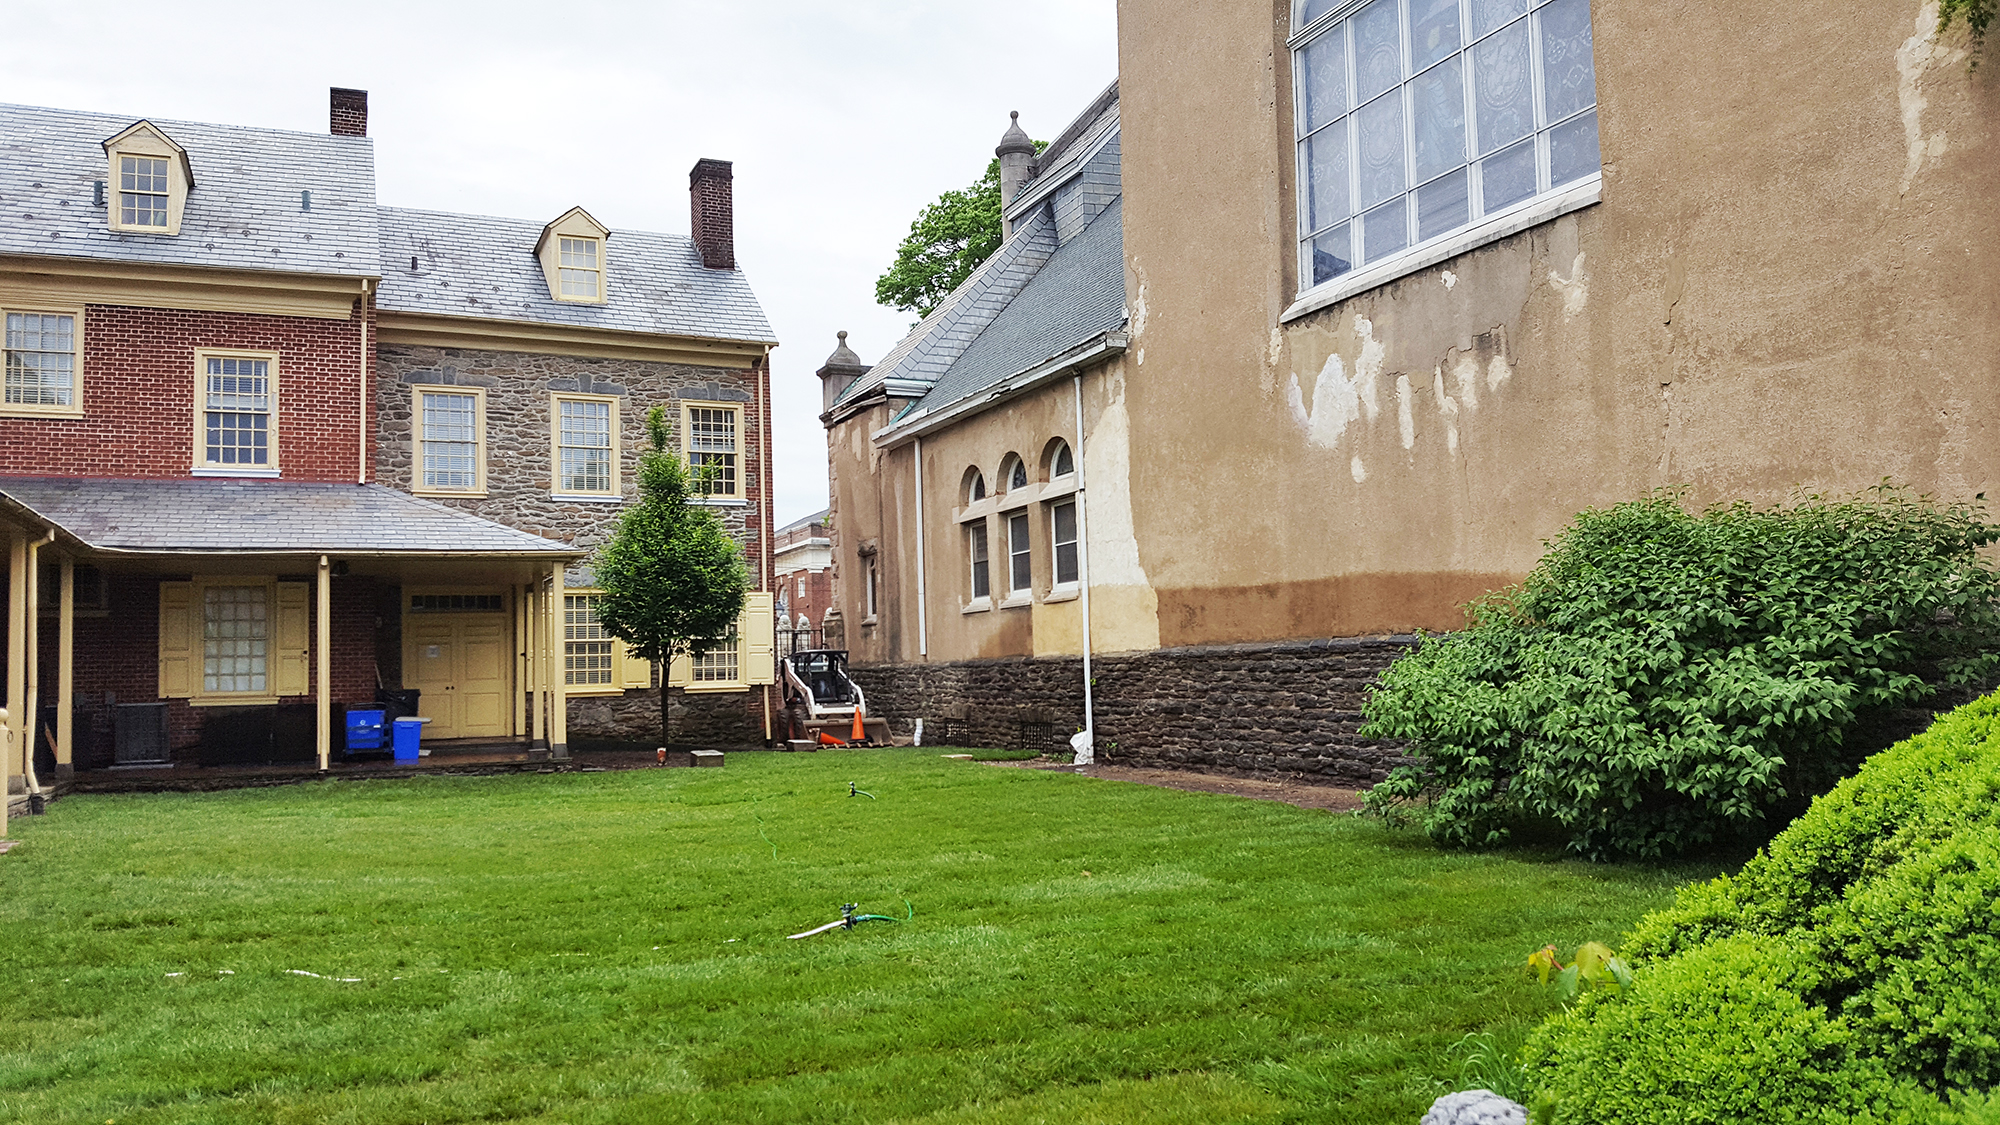 the new courtyard is primarily grass, rather than pavement